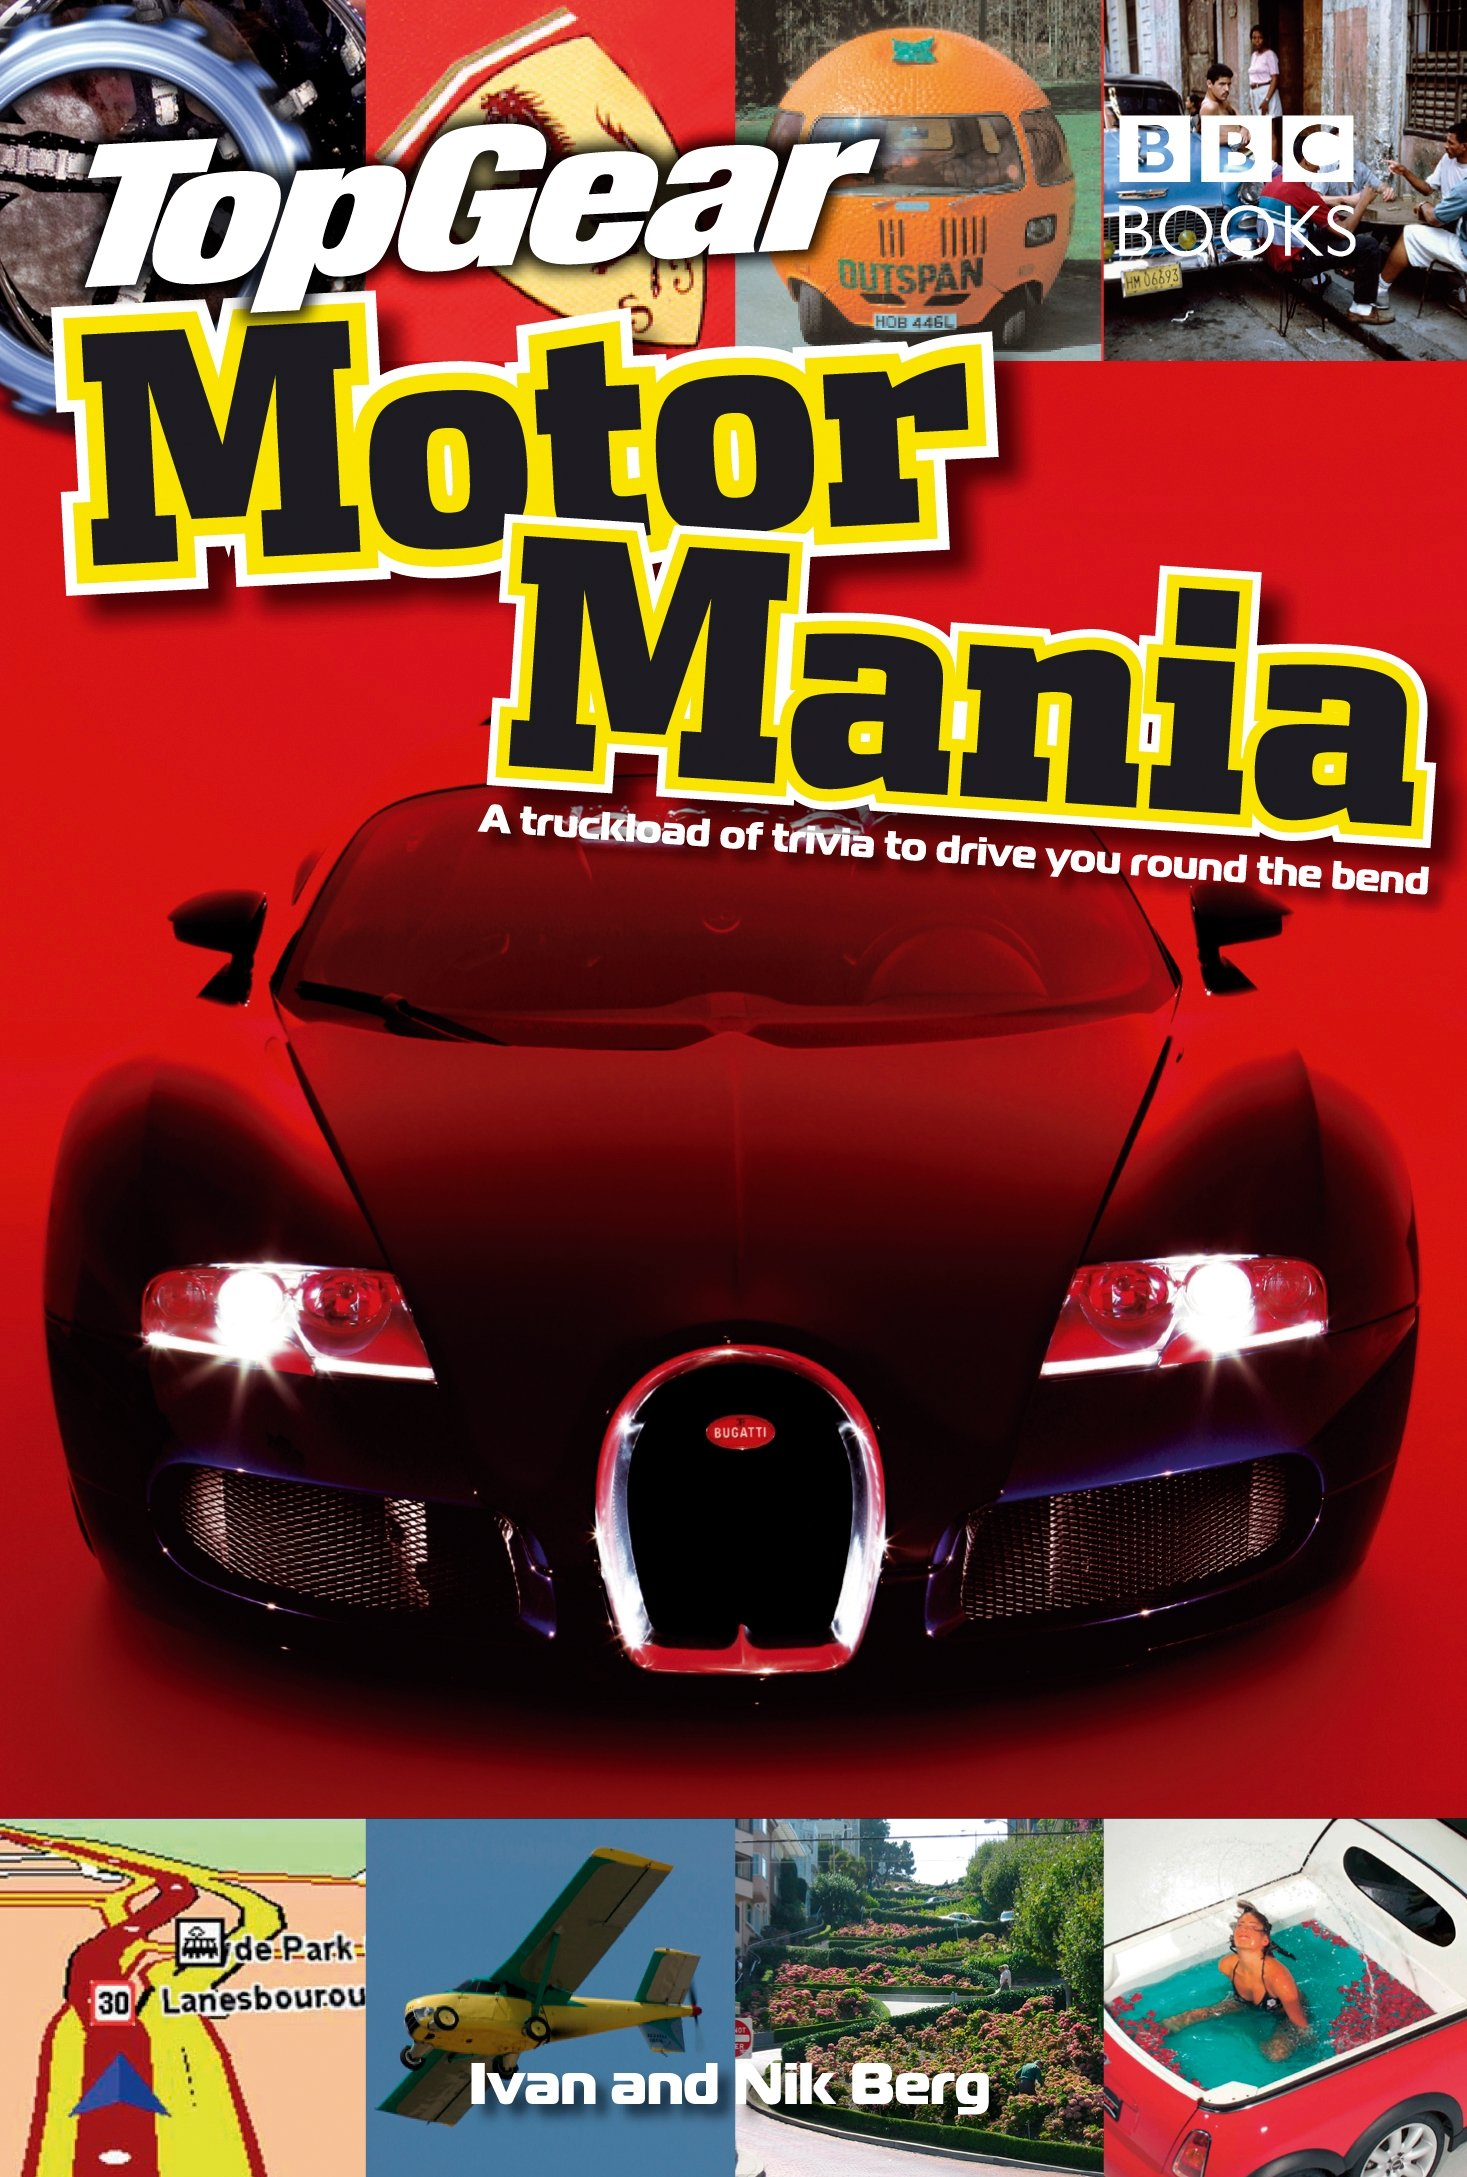 Top Gear Motor Mania: A Truckload of Trivia to Drive You Round the Bend PDF